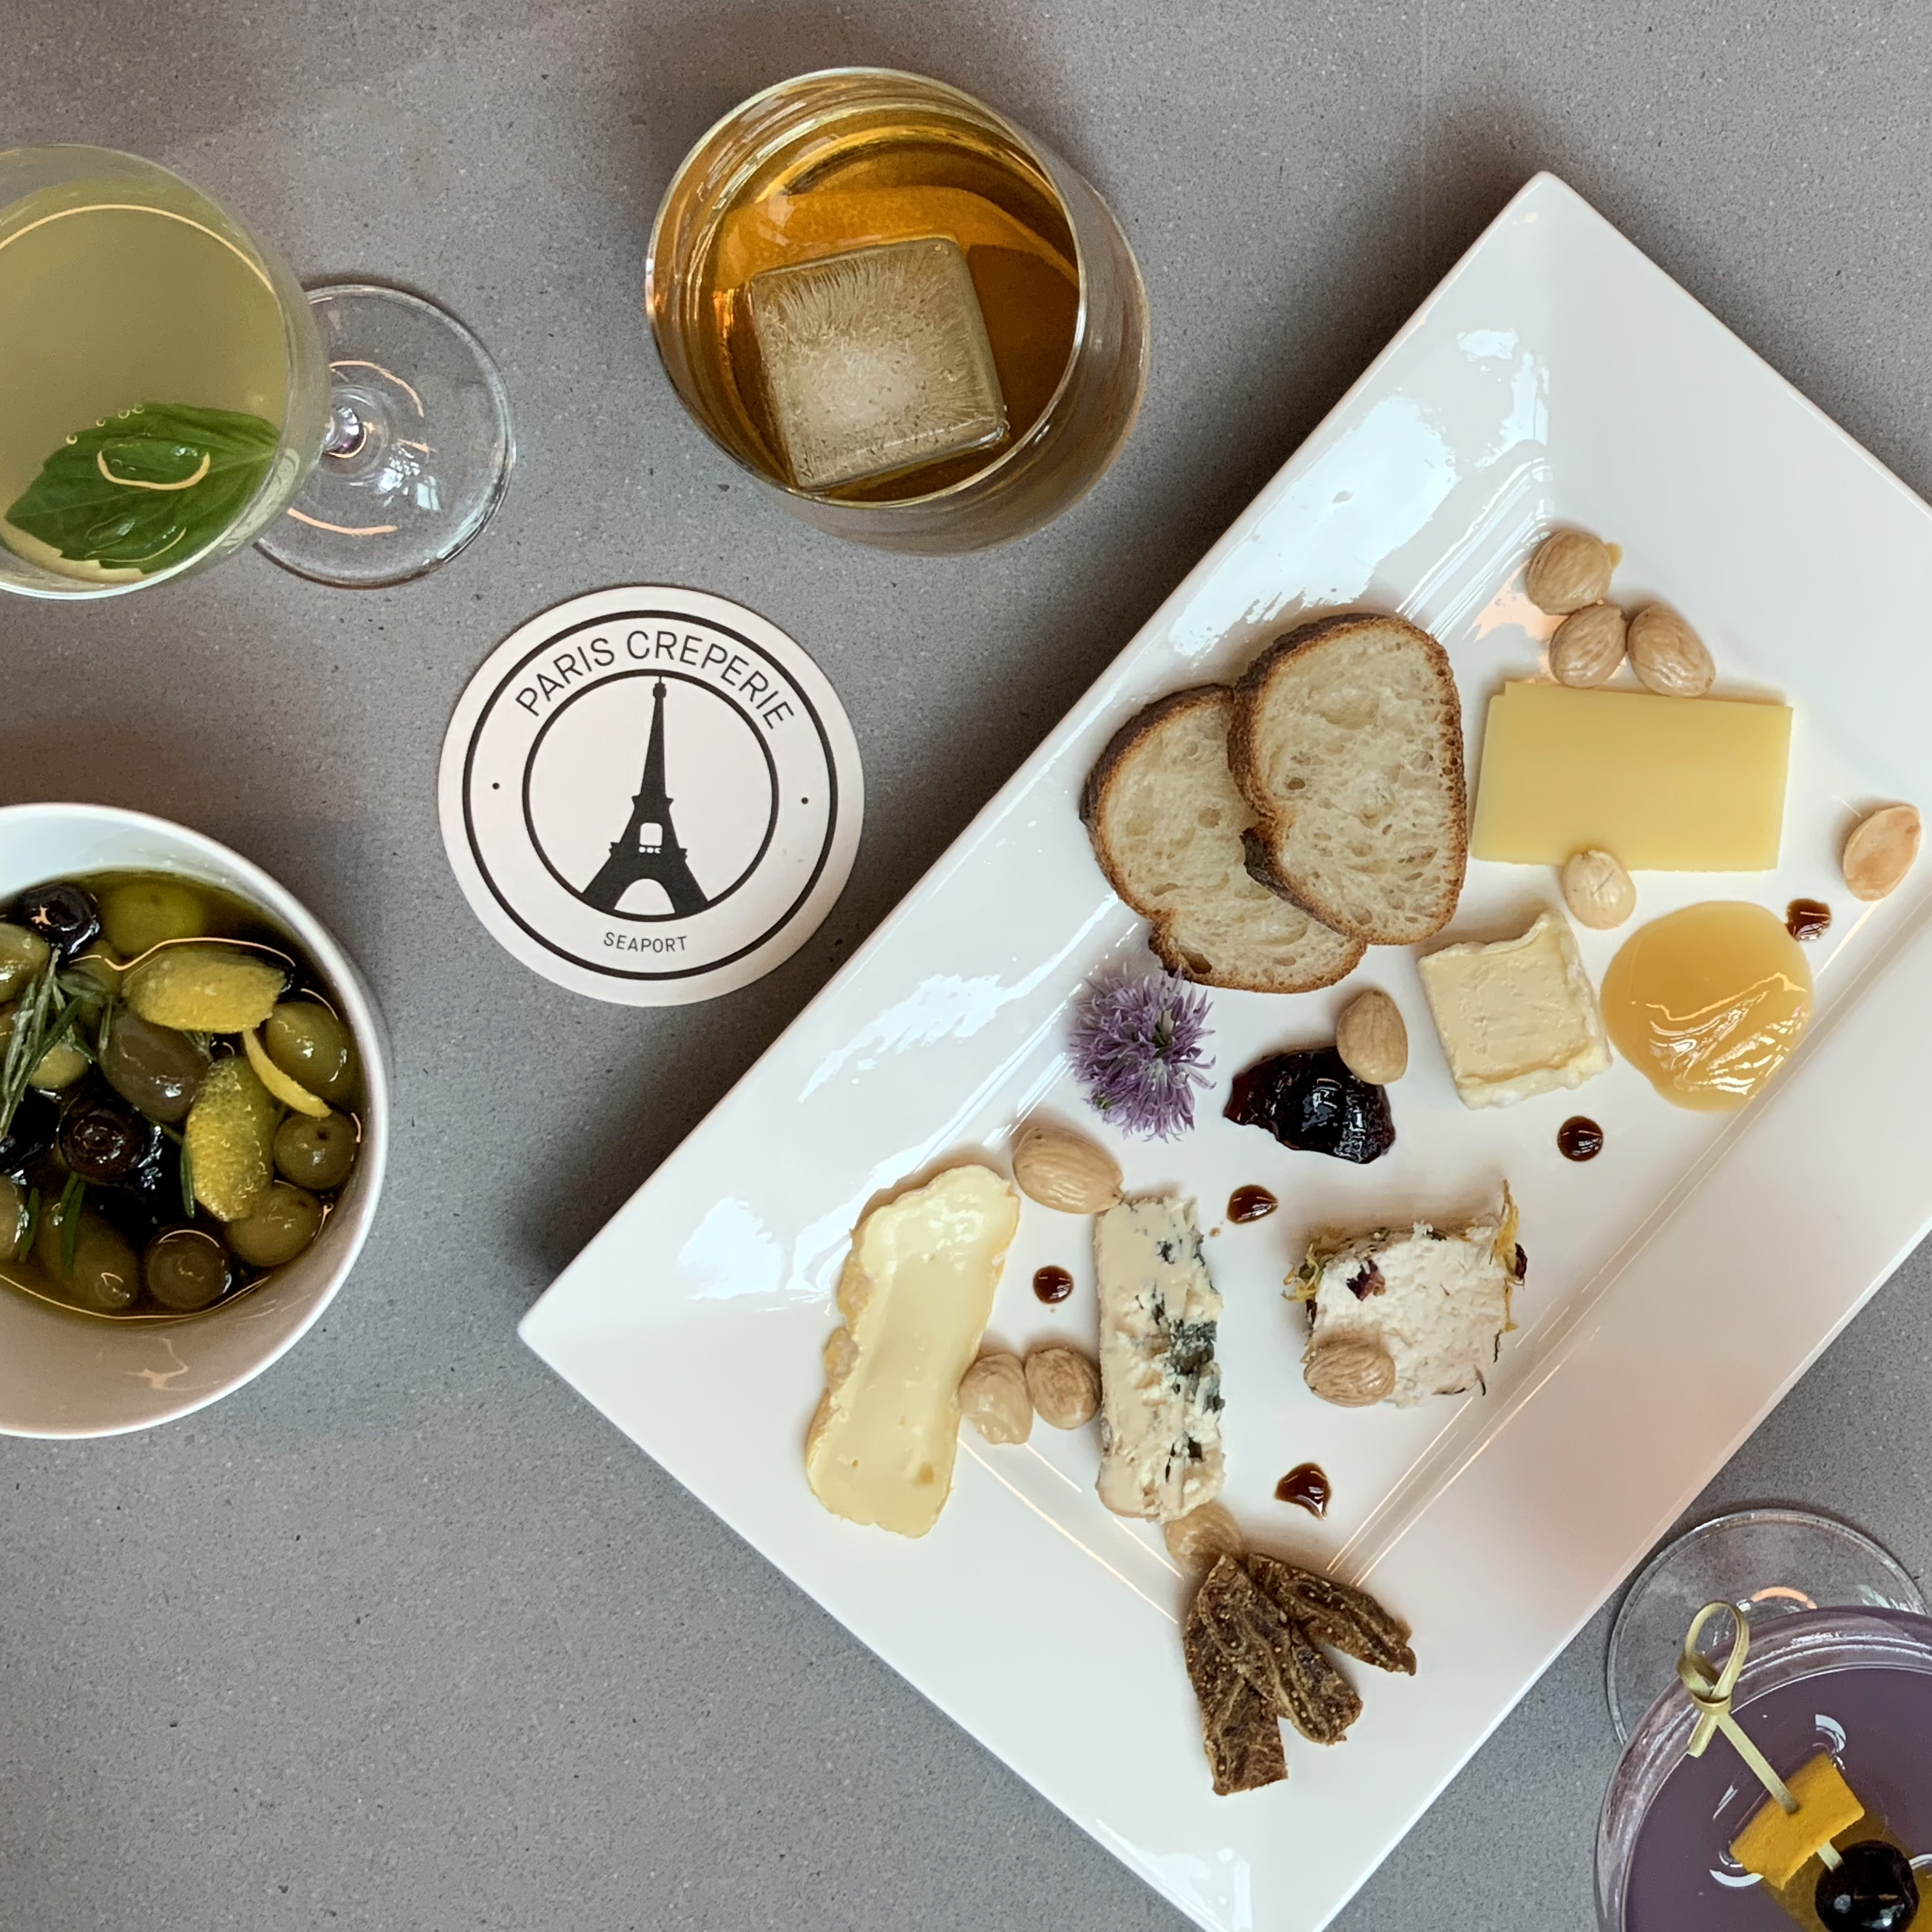 Food and drink spread at Paris Creperie Seaport